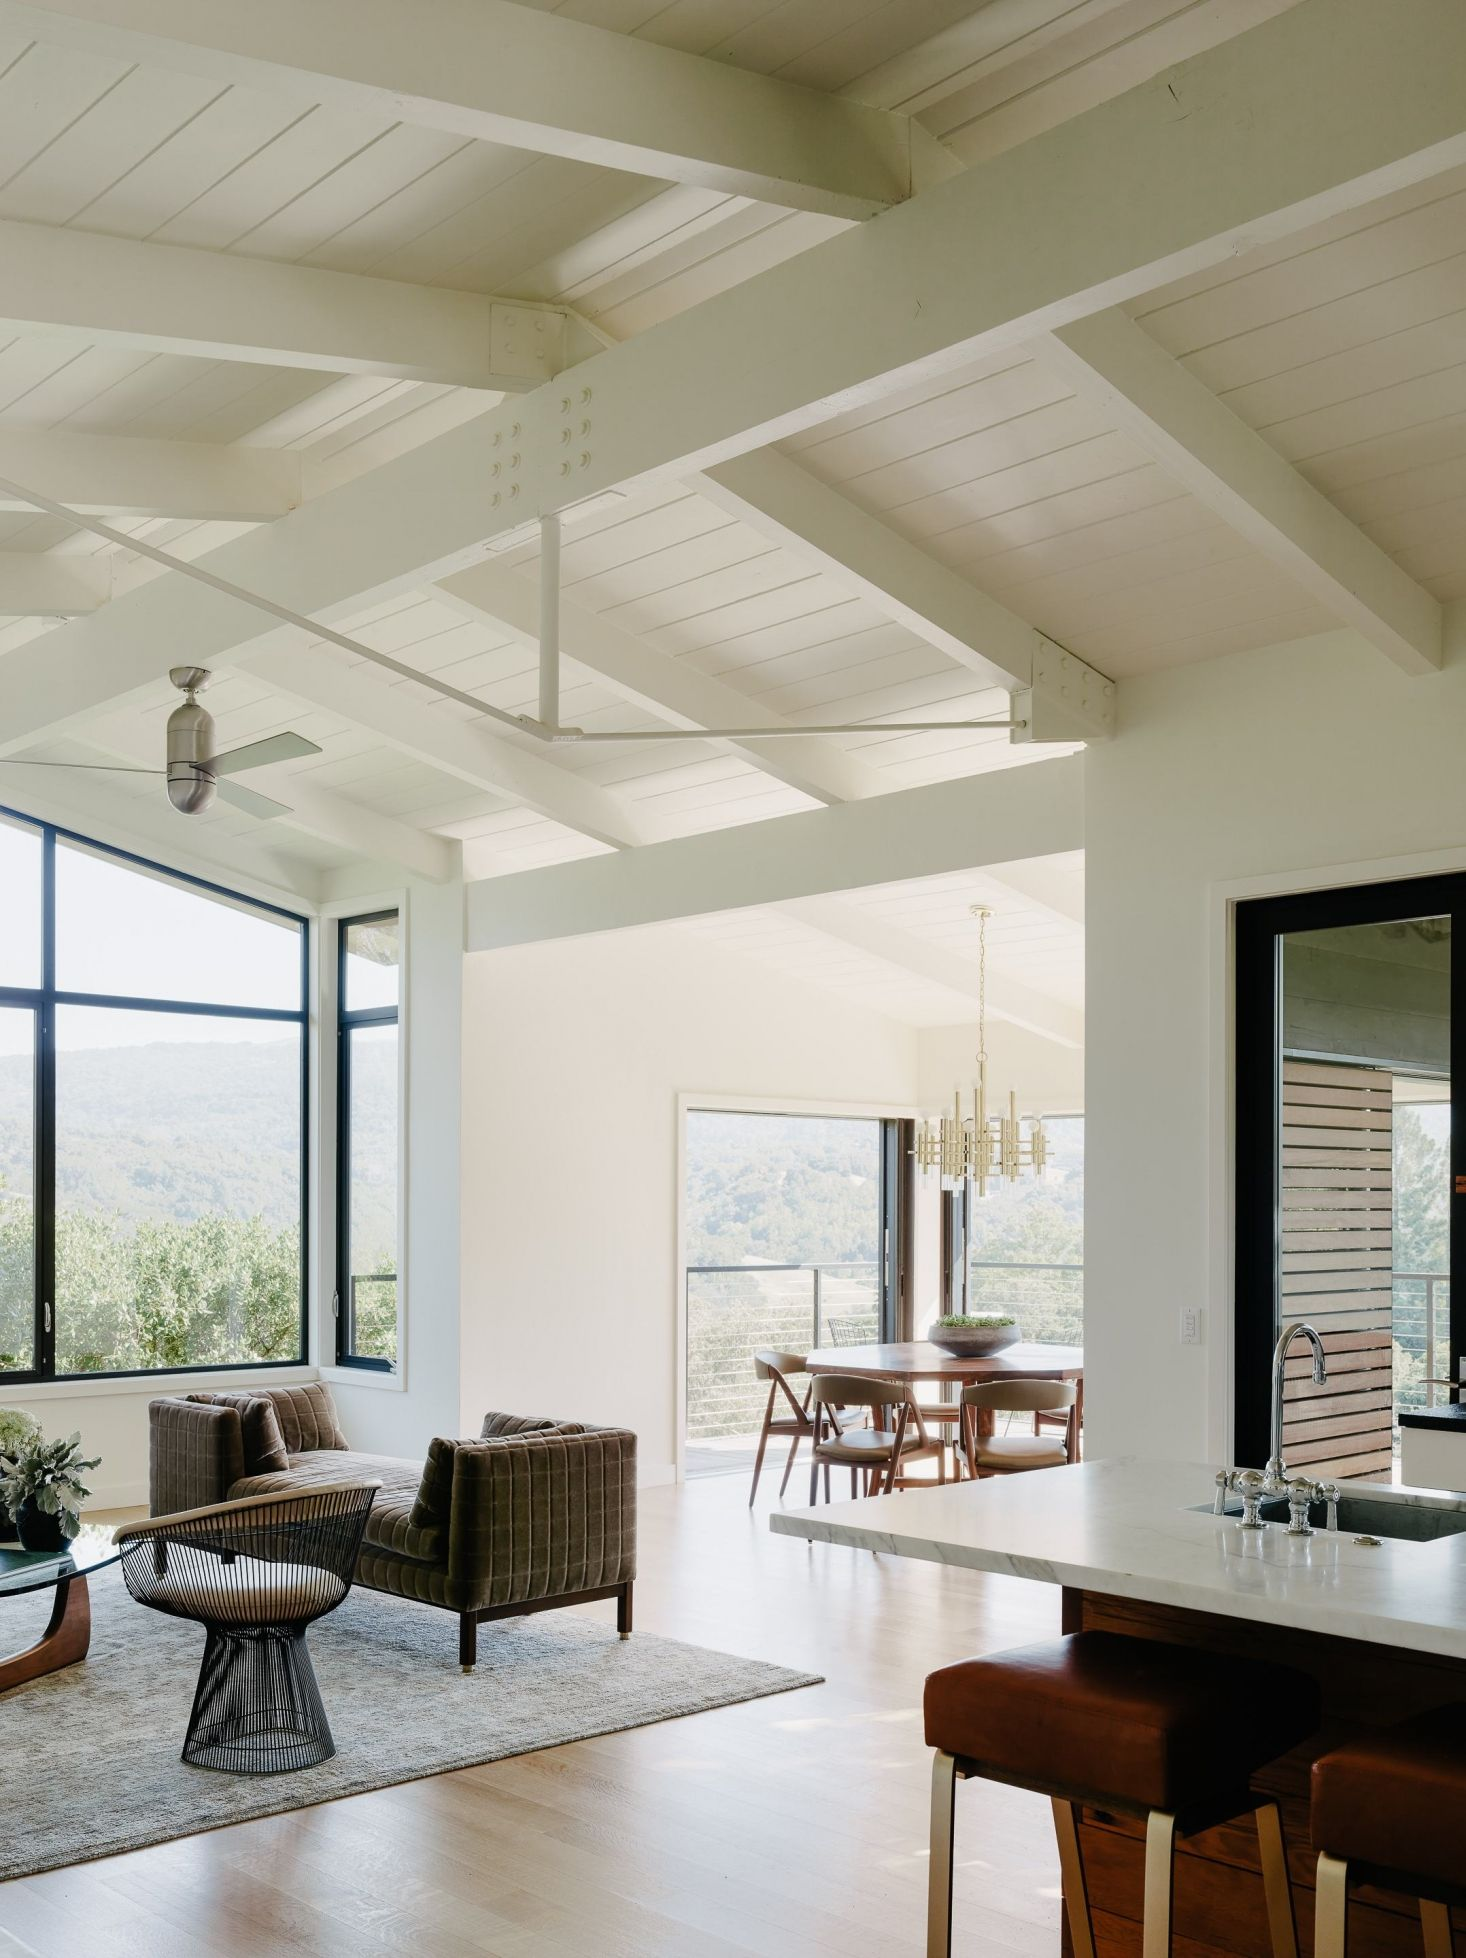 California Idyll: A Pitched-Roof Midcentury Revival with Dramatic ...